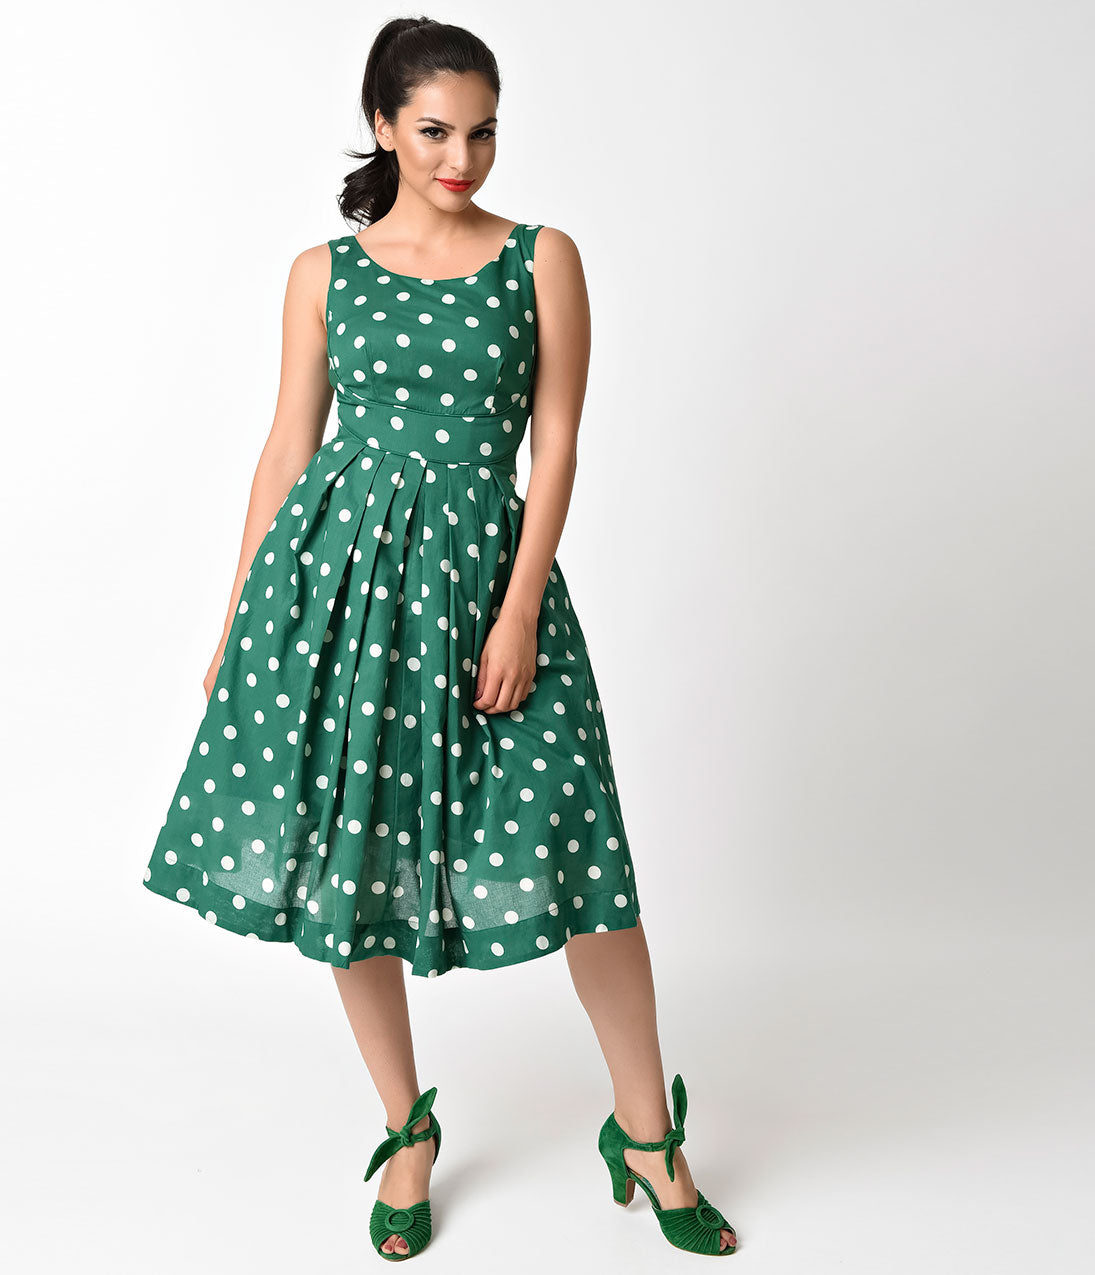 Vintage Polka Dot Dresses – 50s Spotty and Ditsy Prints 1950s Style Jungle Green  Ivory Dotted Isobel Cotton Swing Dress $94.00 AT vintagedancer.com